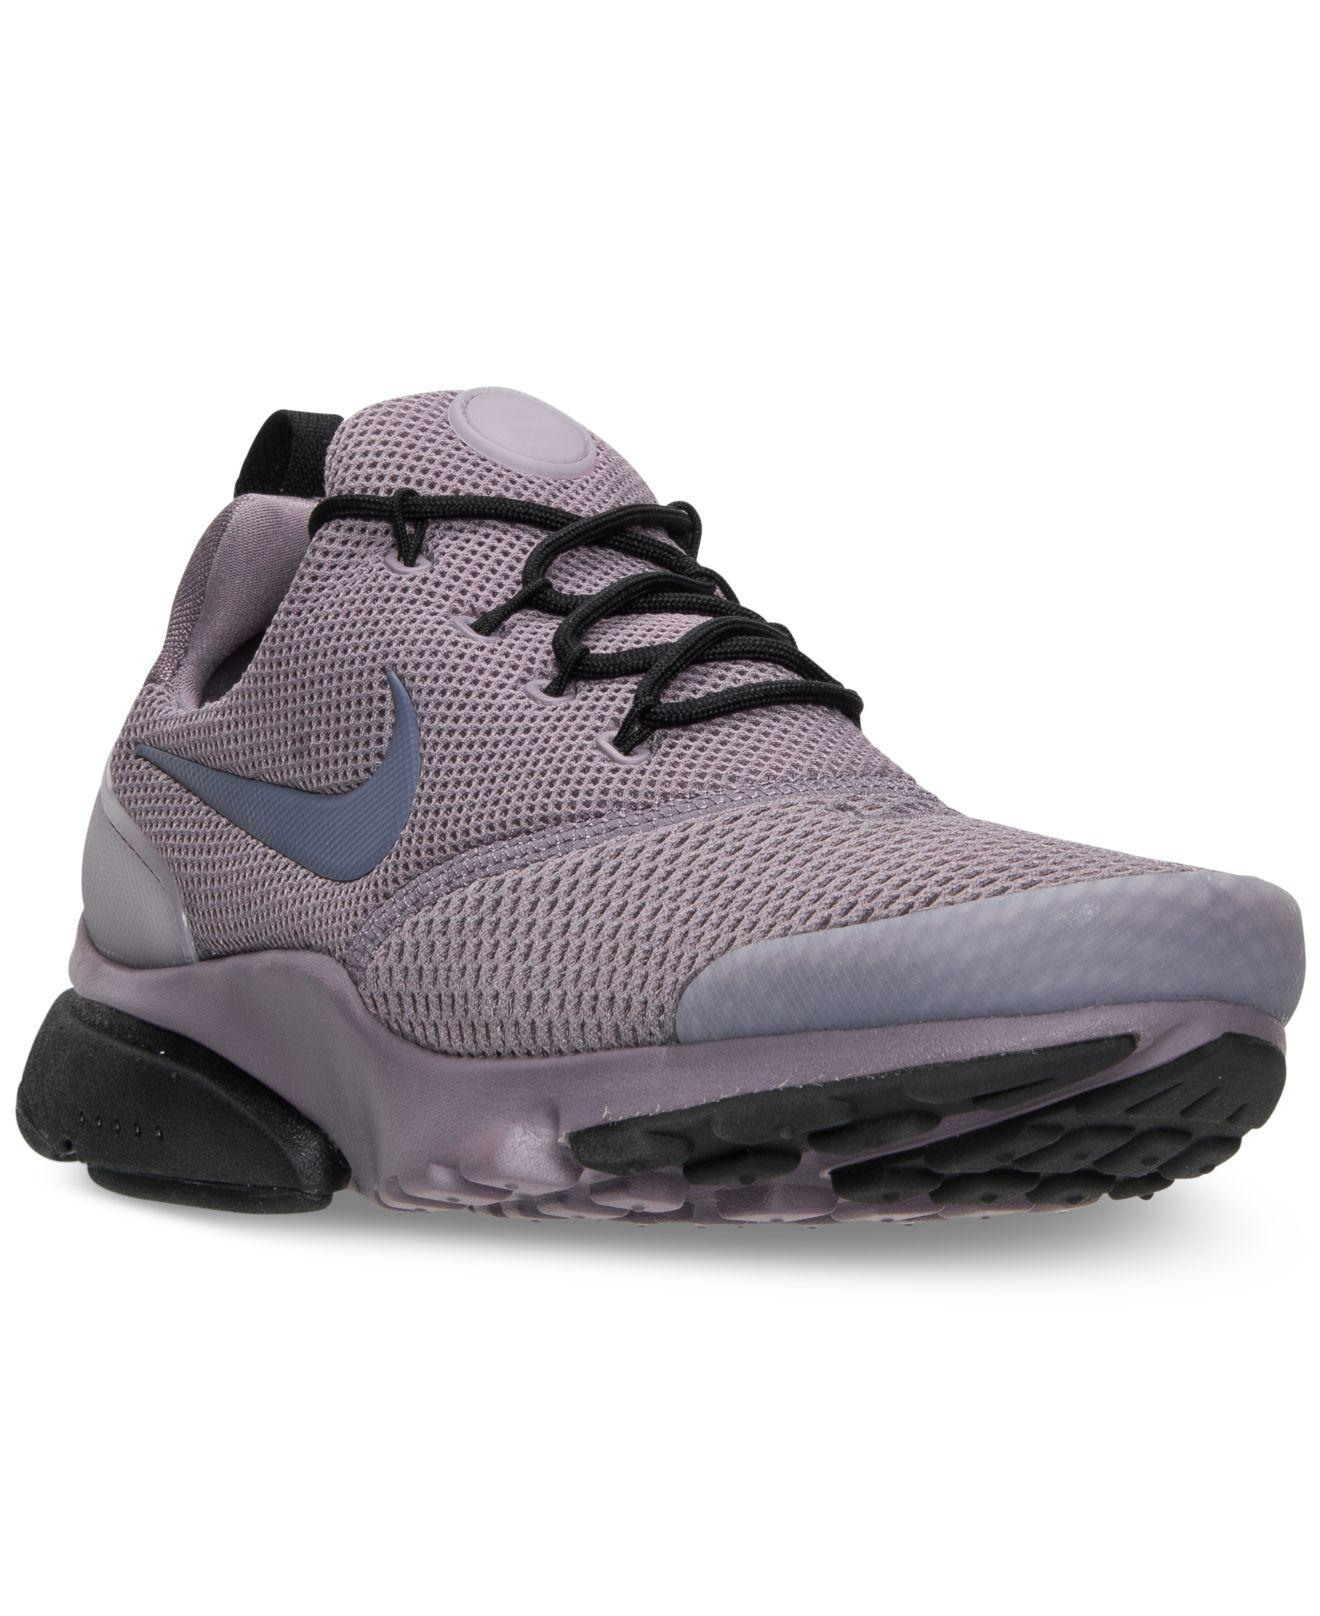 3289d73703d1 Lyst - Nike Women s Presto Fly Running Sneakers From Finish Line